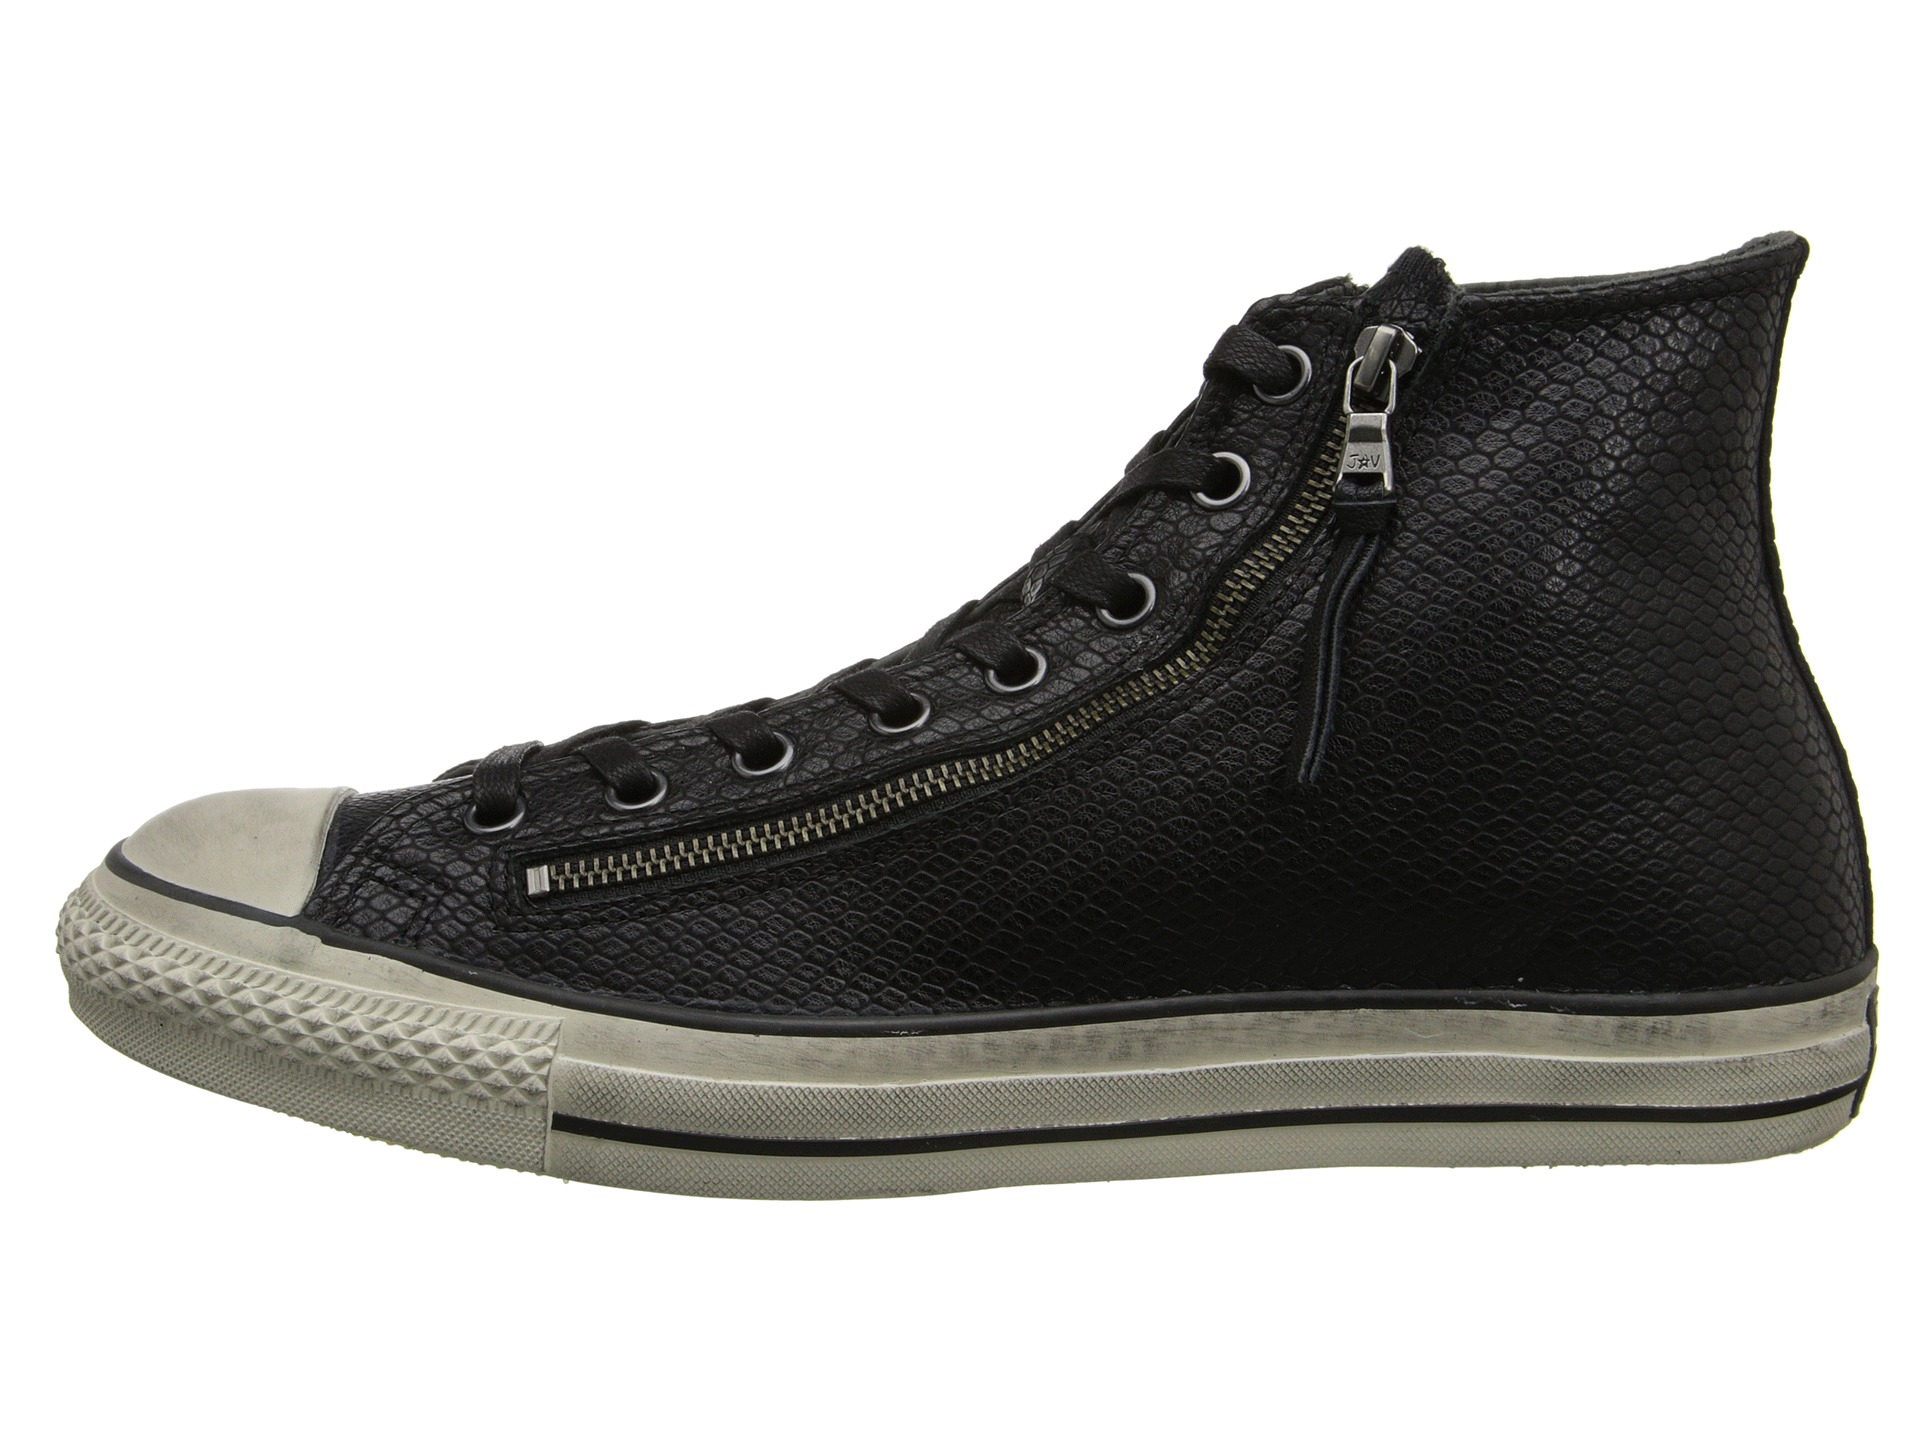 c1526586820d Lyst - Converse Chuck Taylor All Star Leather Double Zip Black Snake ...